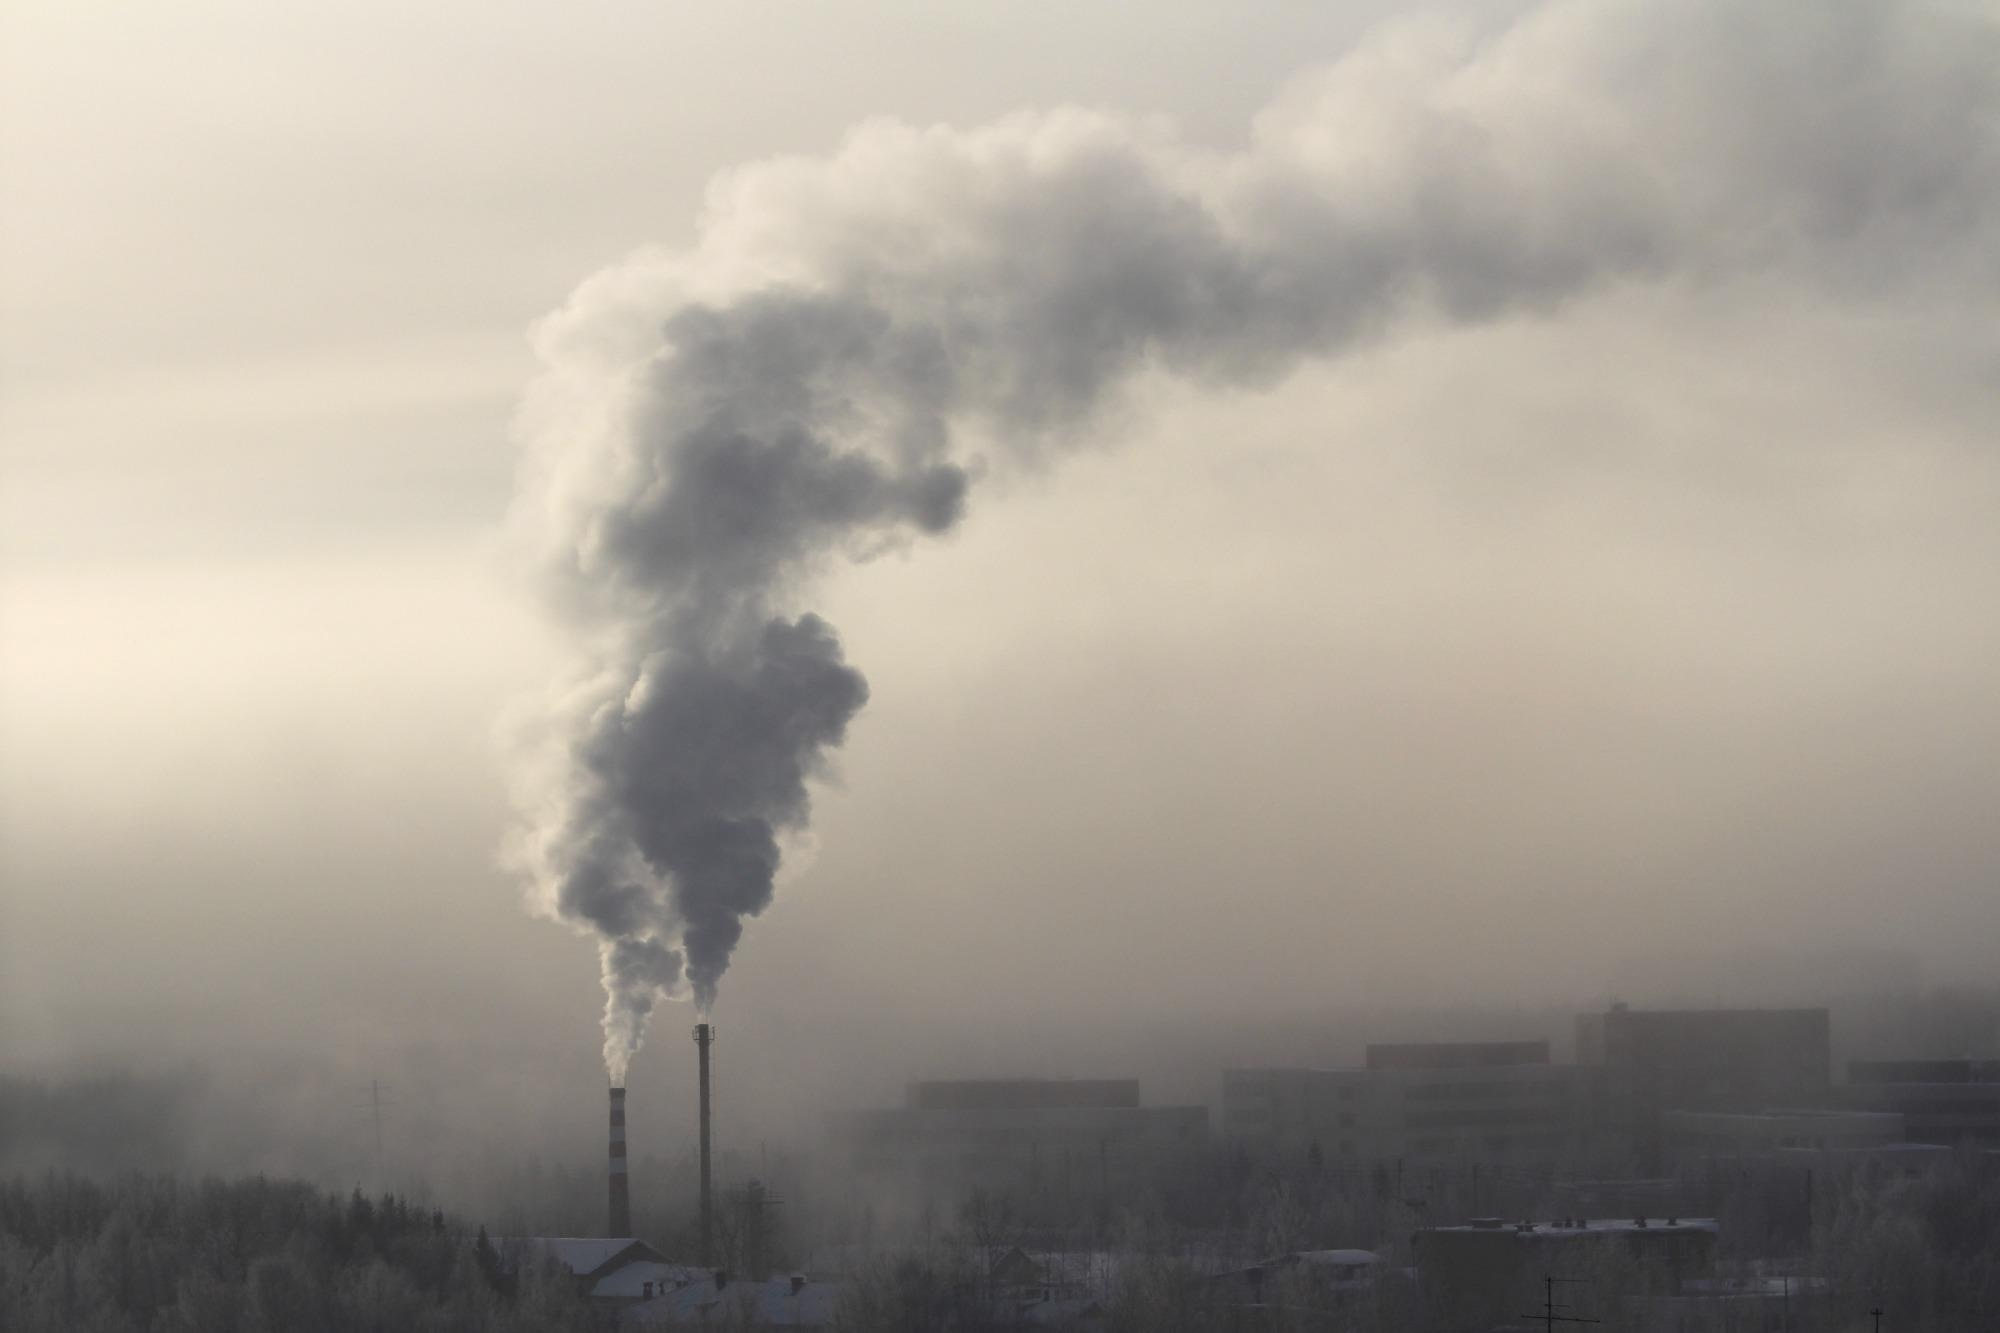 COVID-19 Lockdown Reduced Atmospheric Nitrogen Oxide Levels in India